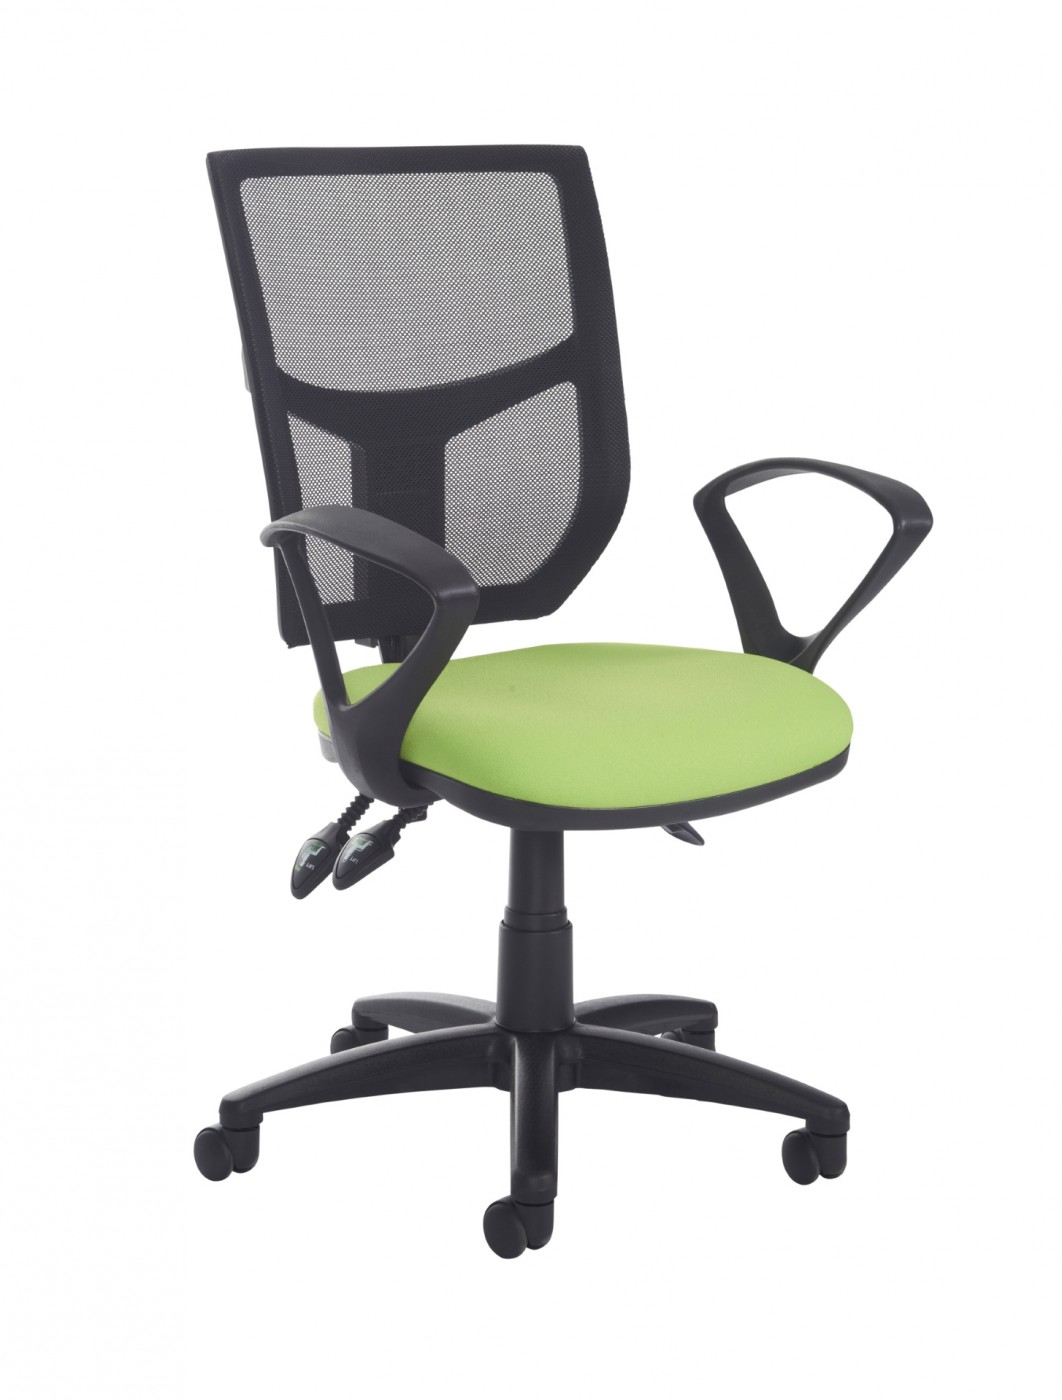 altino high back 3 lever operators chair ah21 000 with fixed arms